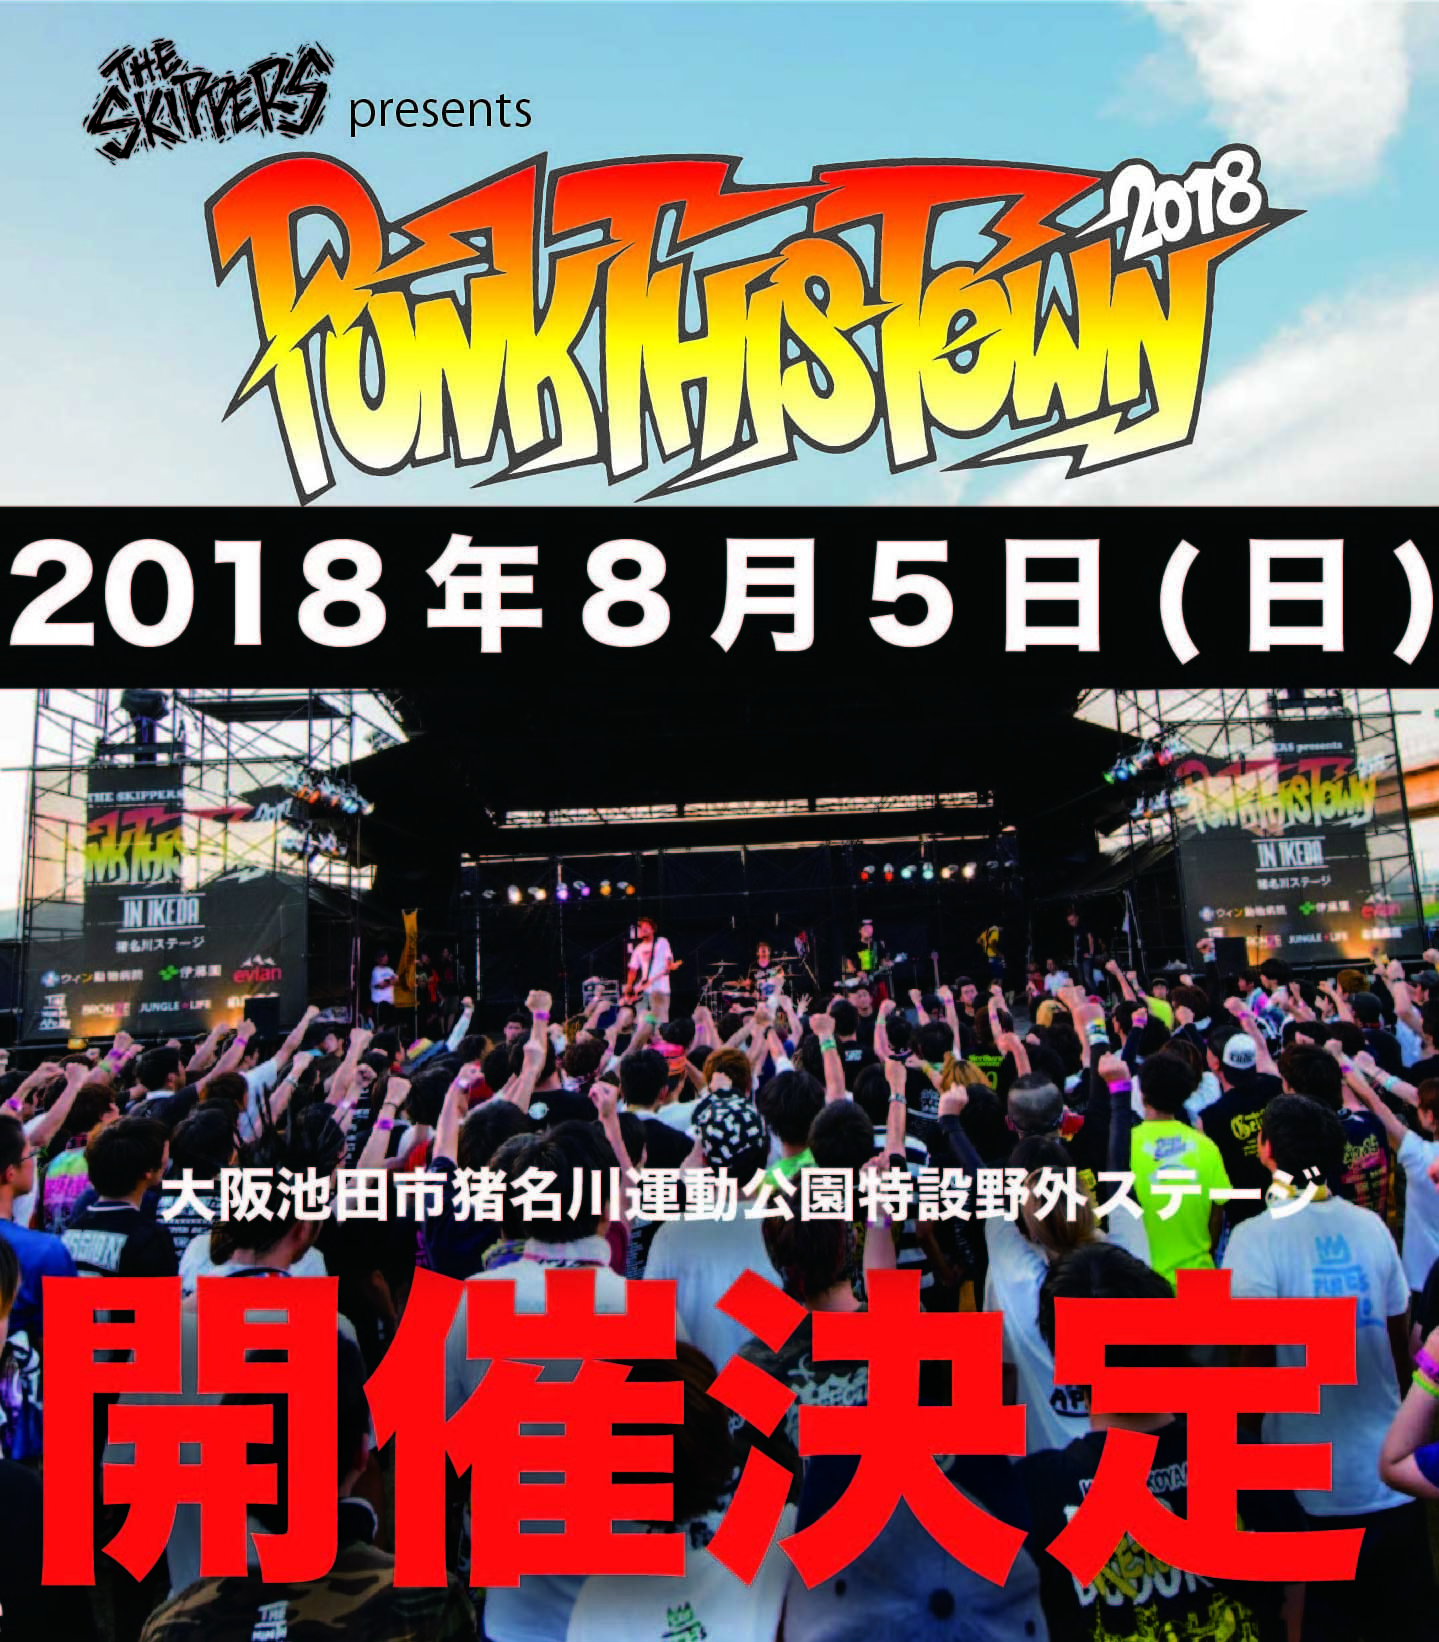 THE SKIPPERS presents PUNK THIS TOWN 2018 in IKEDA